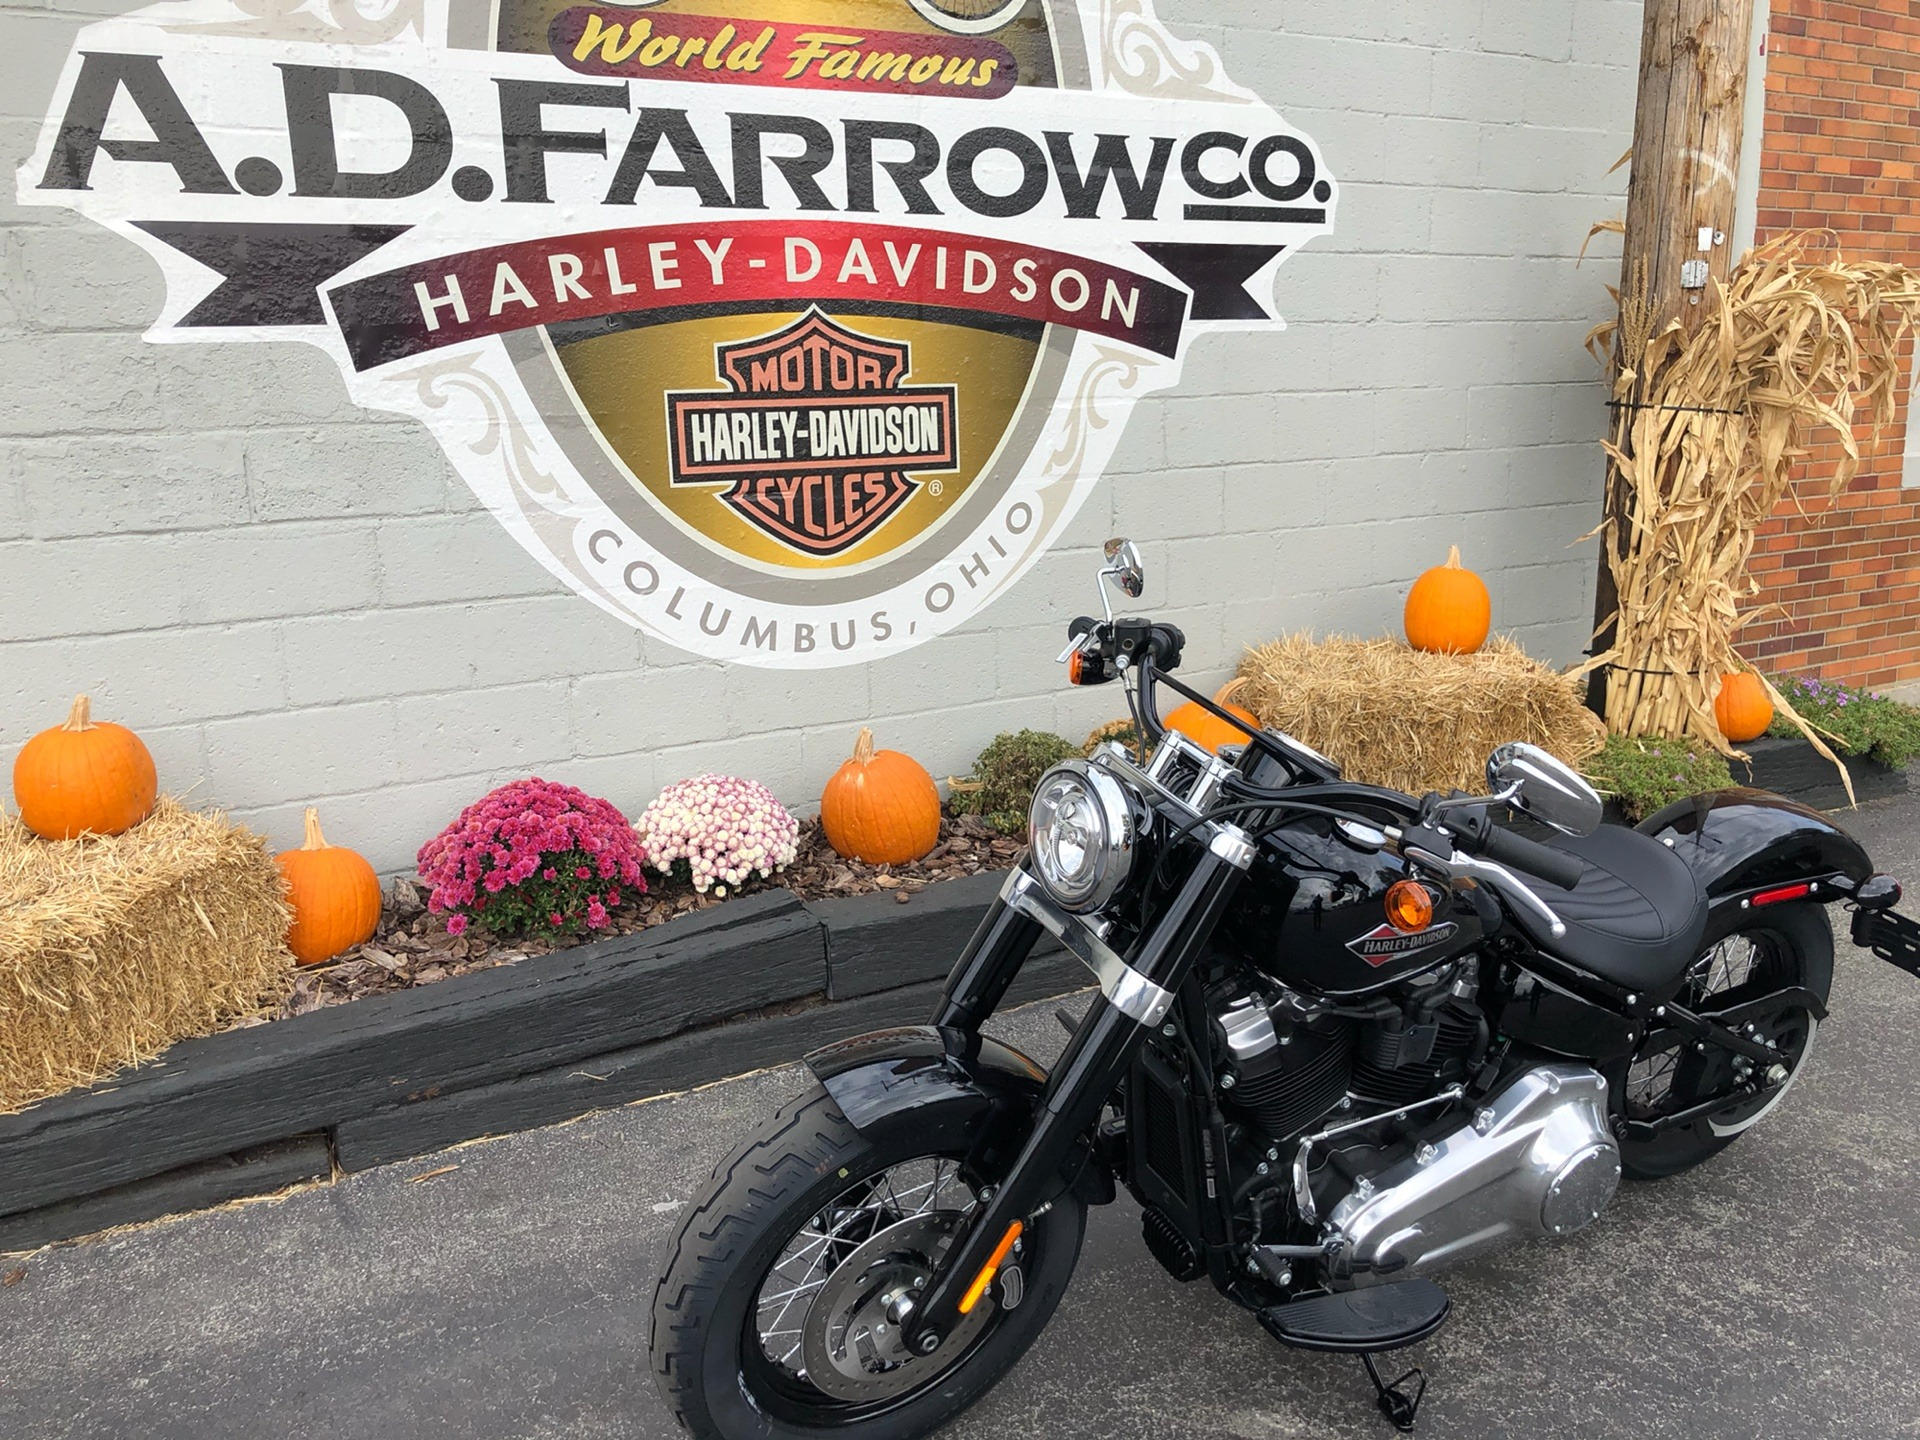 2020 Harley-Davidson FLSL in Sunbury, Ohio - Photo 5